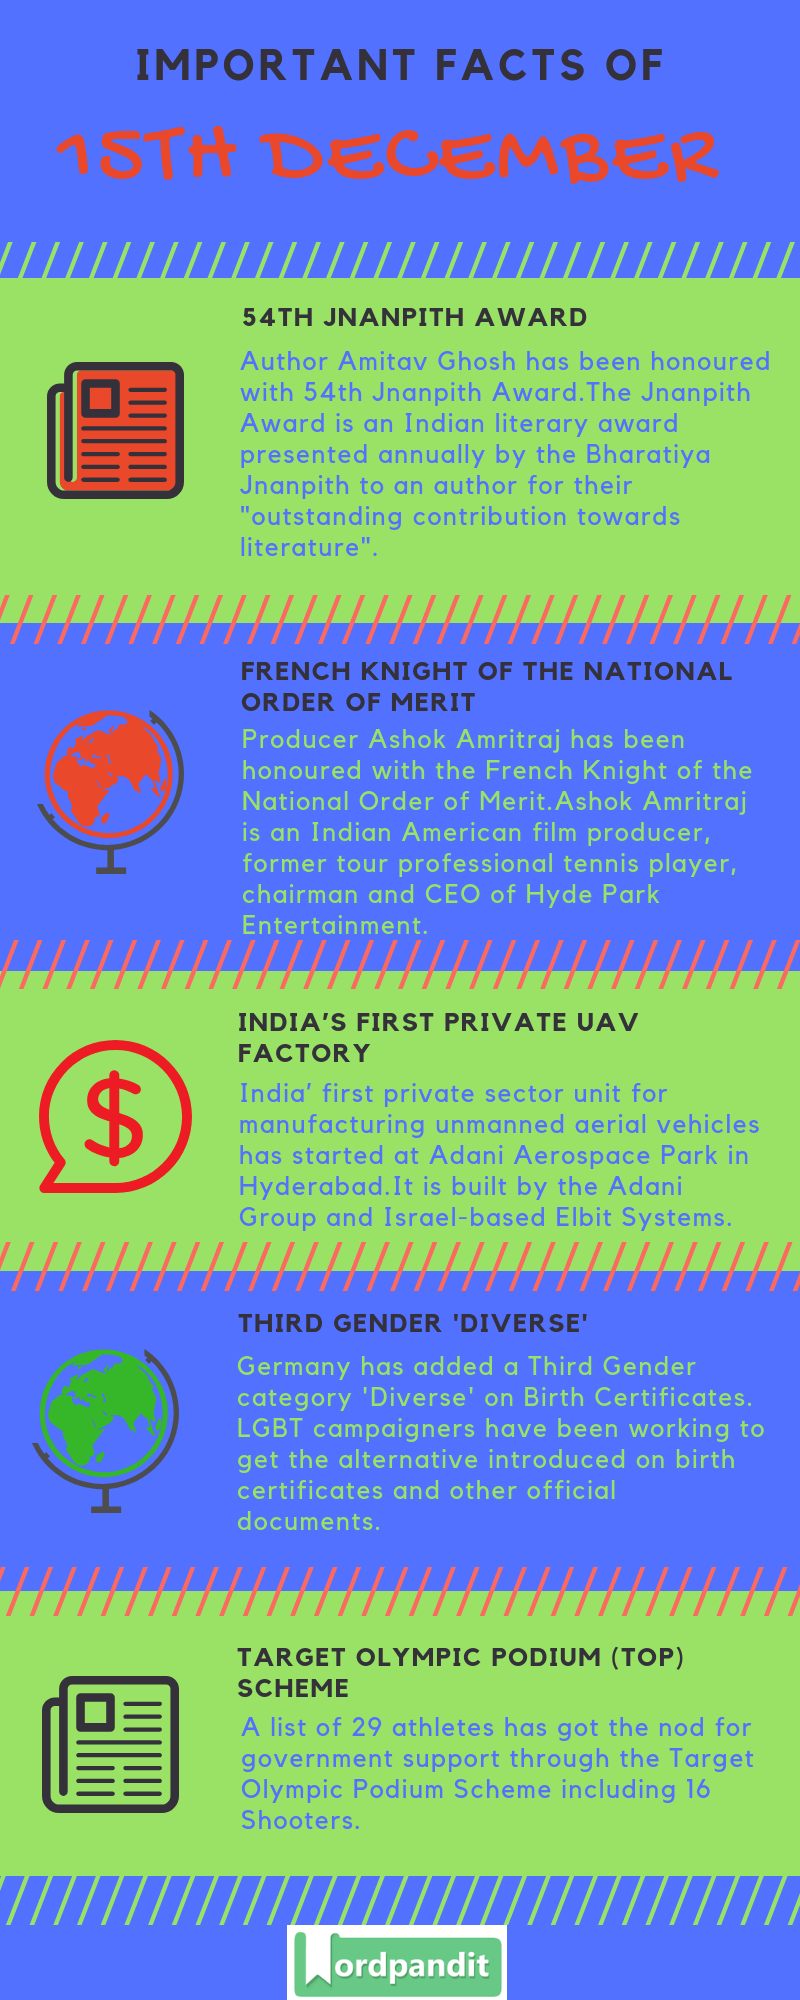 Daily Current Affairs 15 December 2018 Current Affairs Quiz 15 December 2018 Current Affairs Infographic